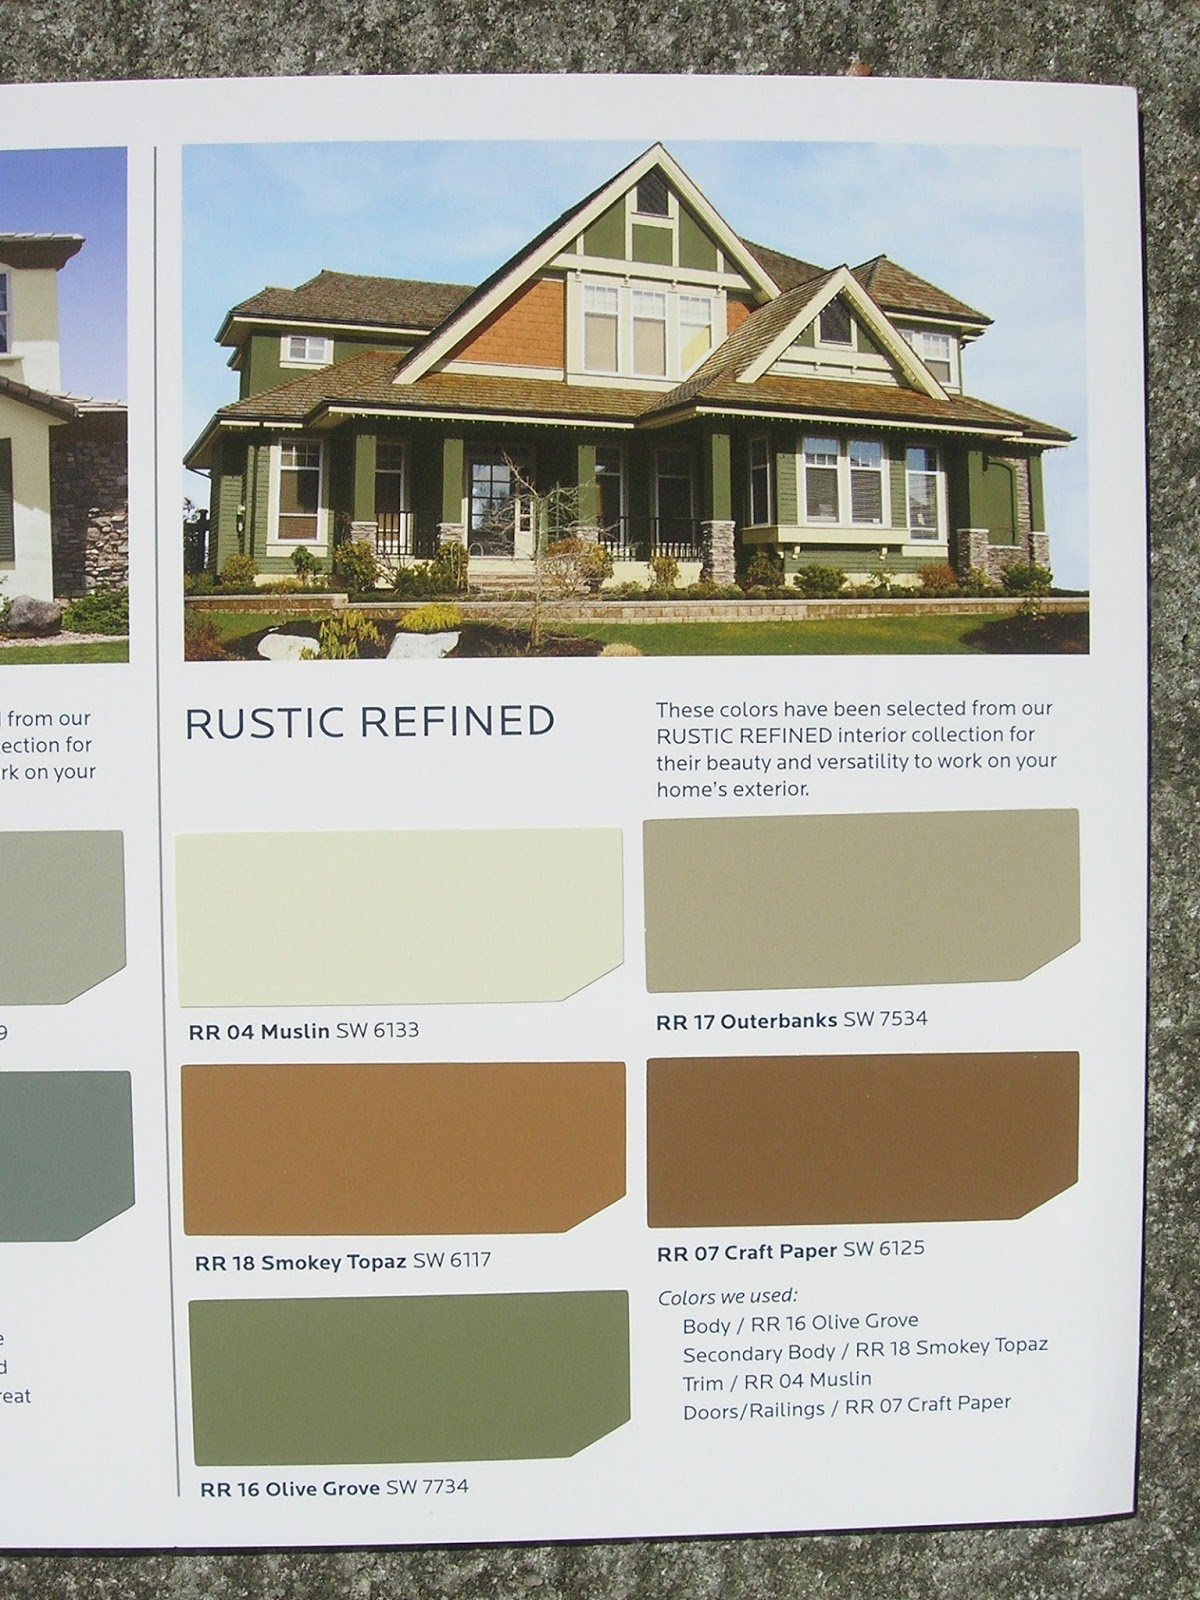 My little bungalow choosing exterior paint colors - Images of exterior house paint colors model ...